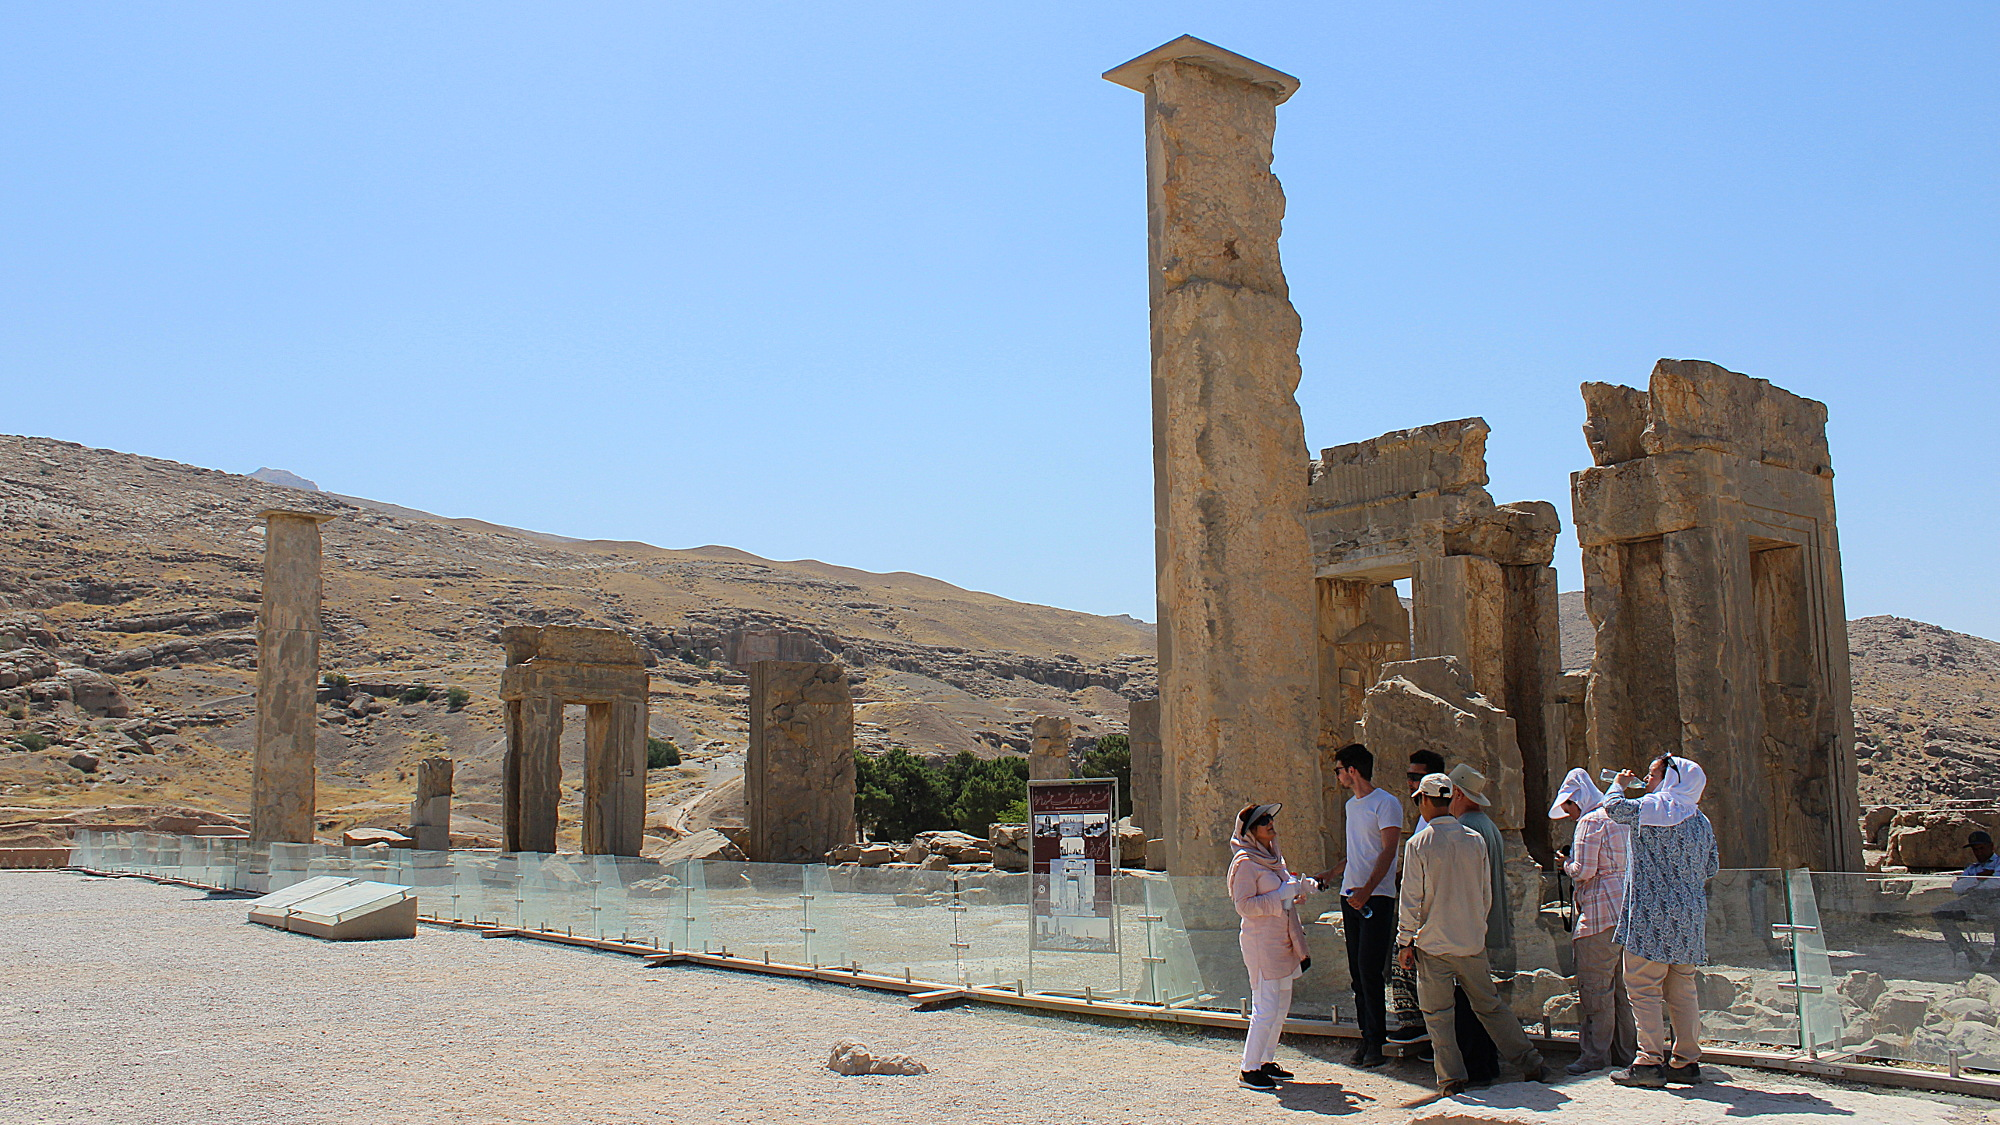 Tourist group taking shade behind a pillar at the ruins of Persepolis.